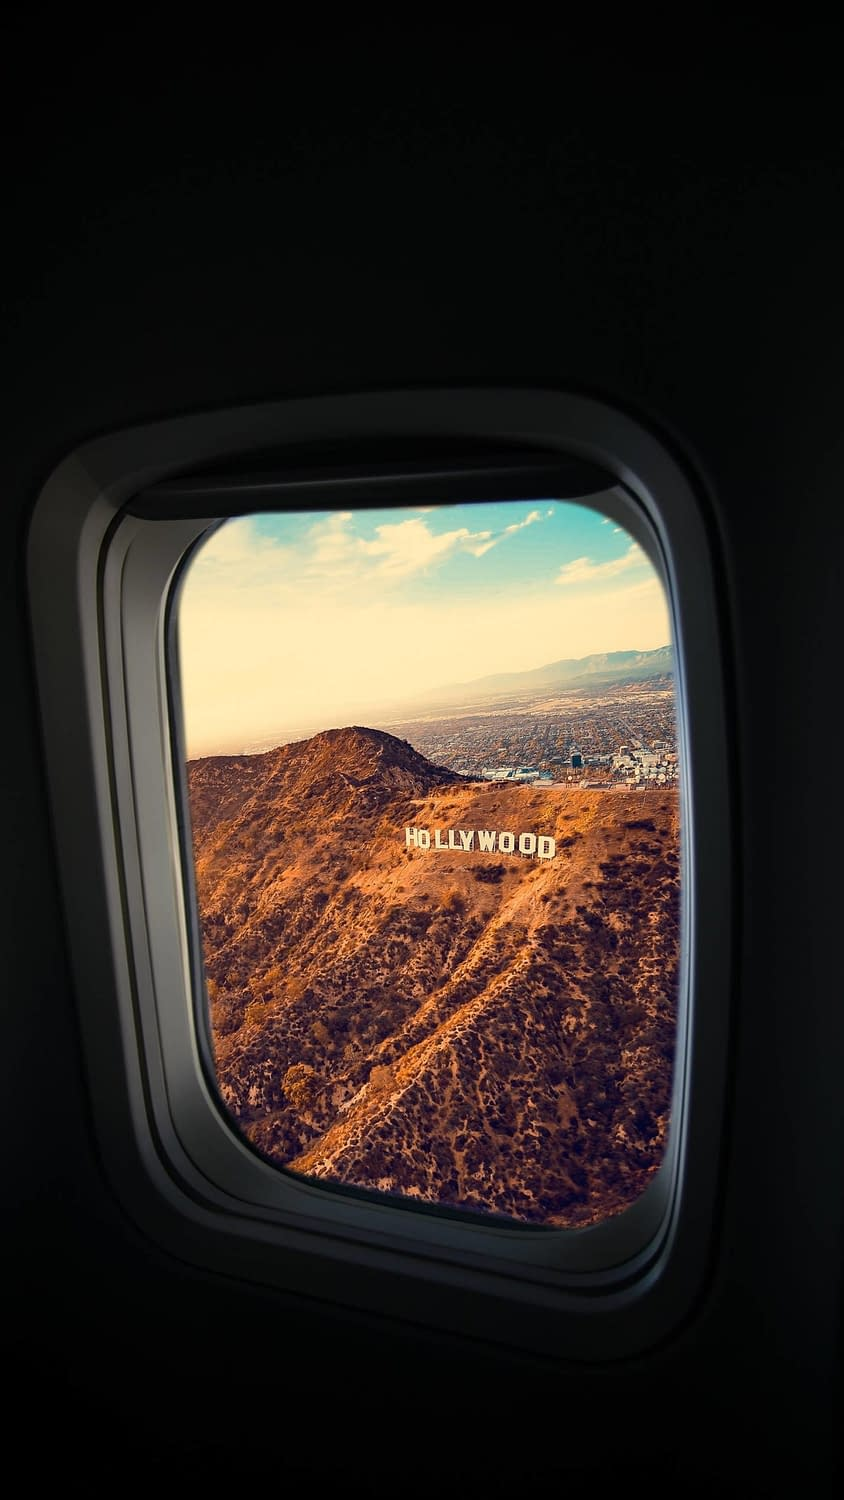 An awesome shot of the Hollywood sign from an airplane.